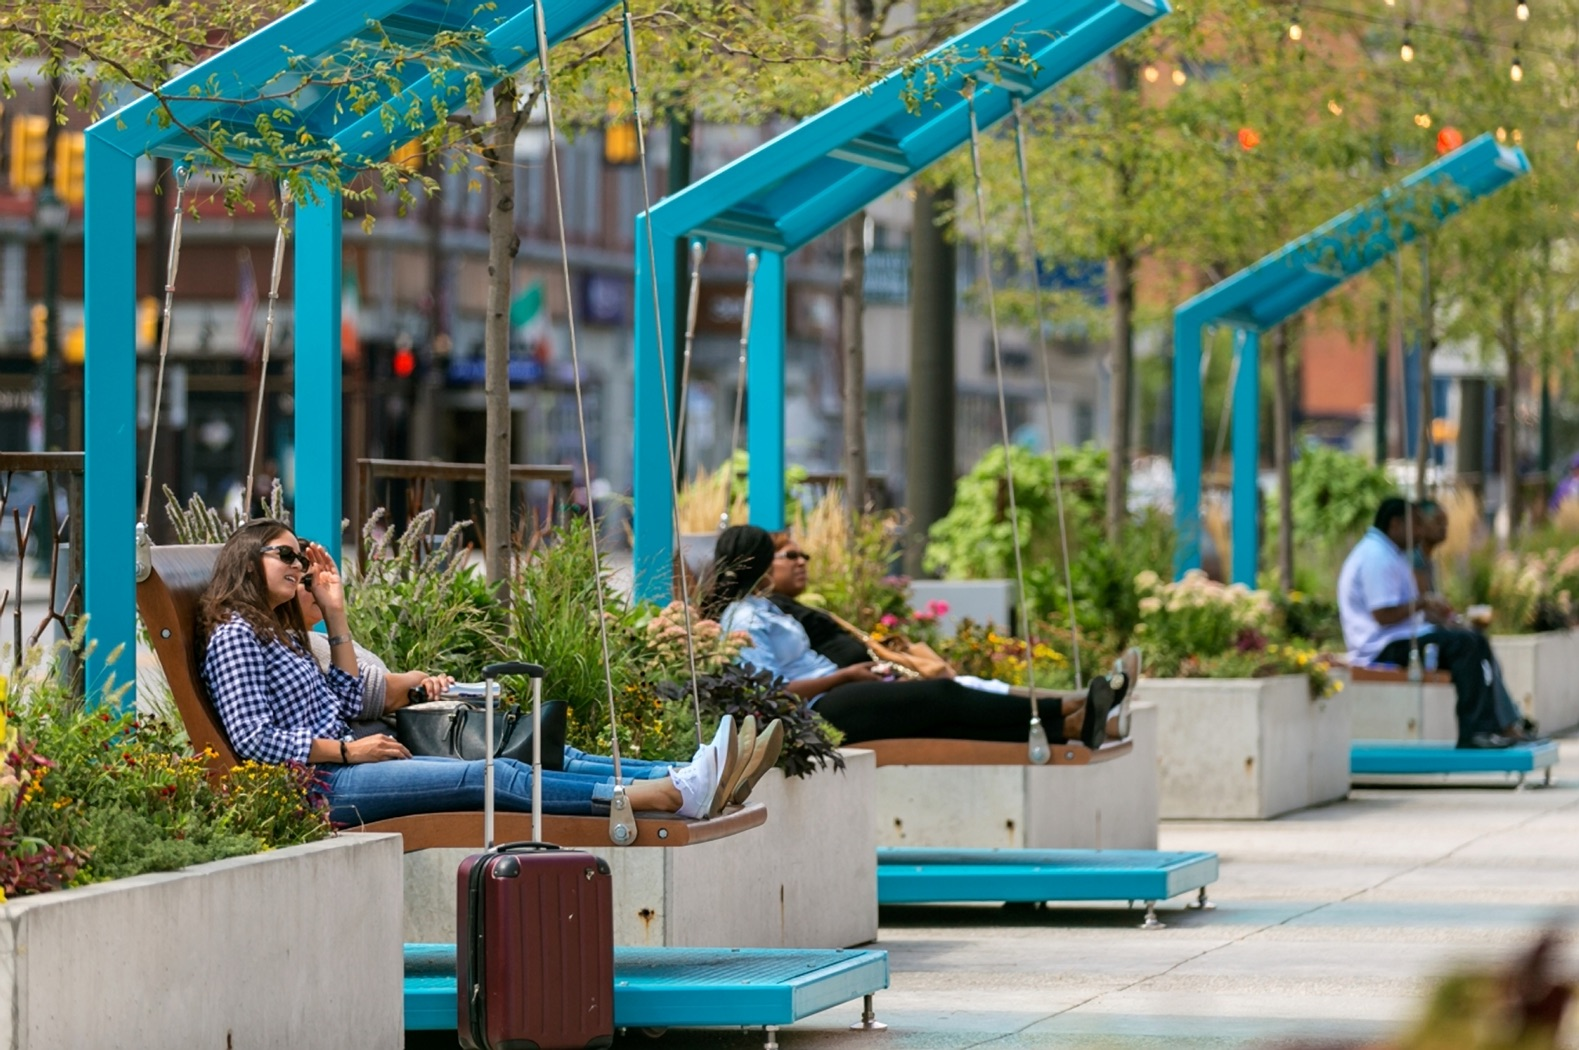 20 things every city can do to boost the quality of public life